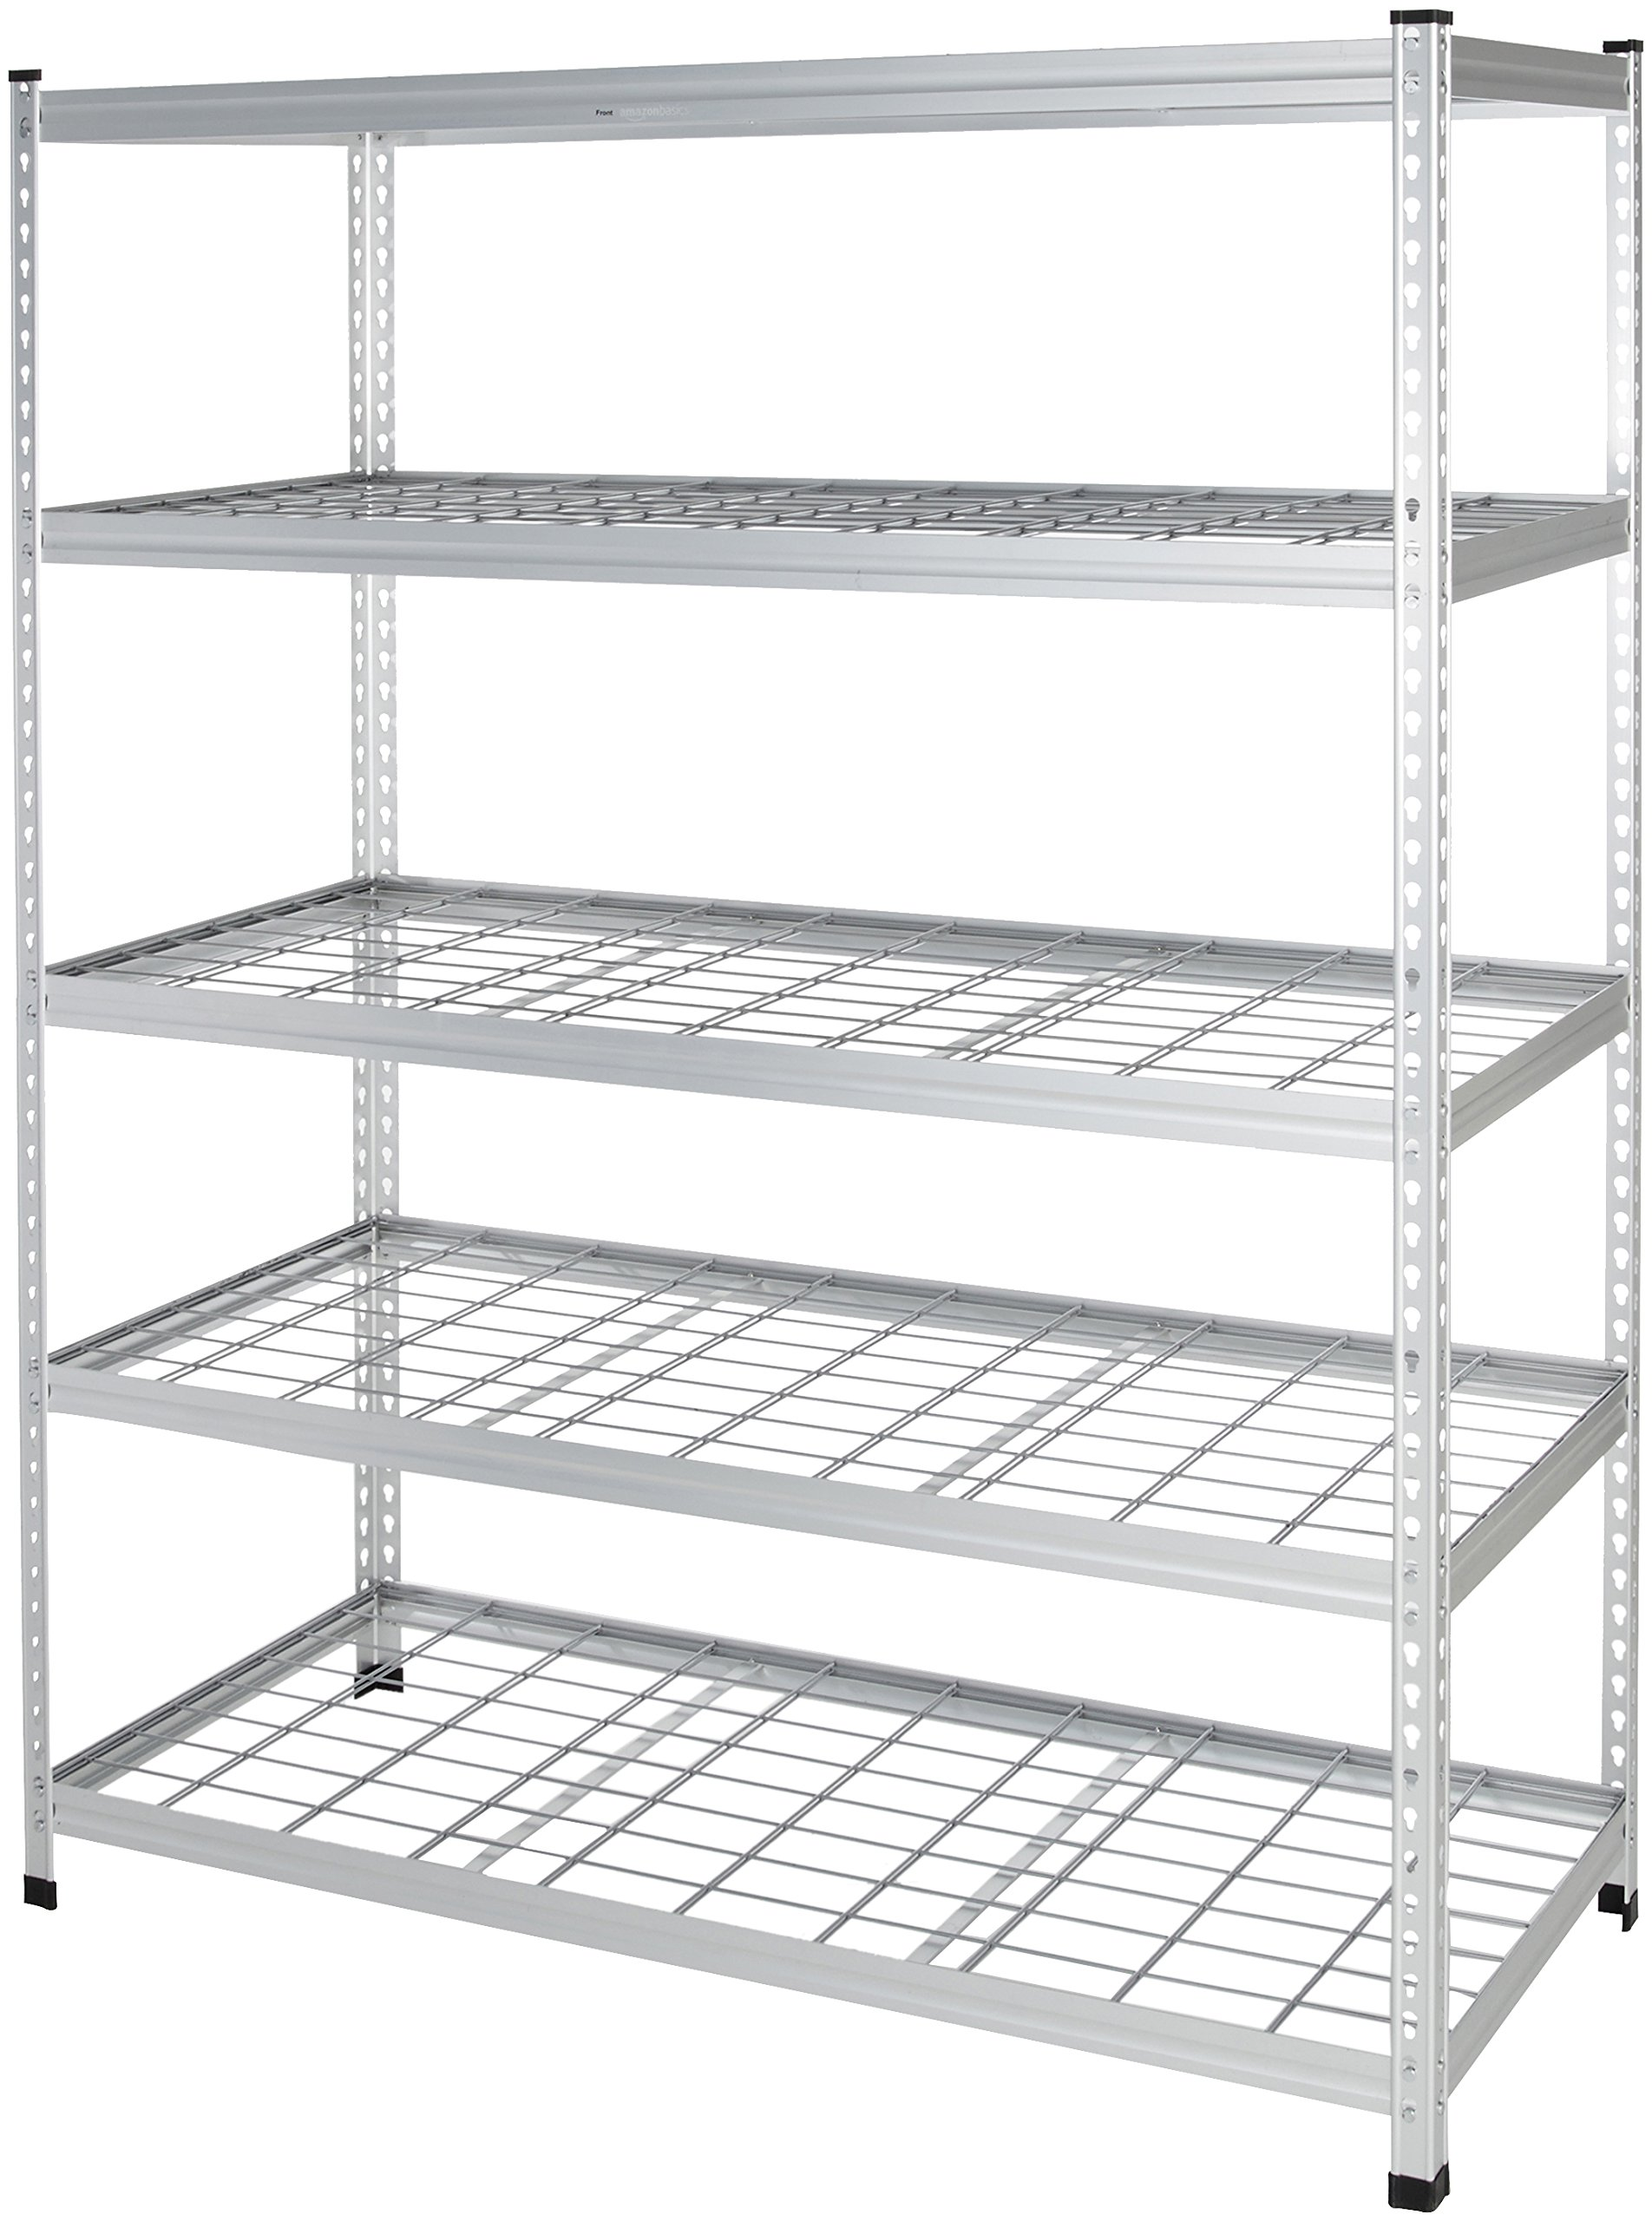 AmazonBasics Heavy Duty Shelving Double-Post Steel Wire Shelf - 60 x 24 x 78